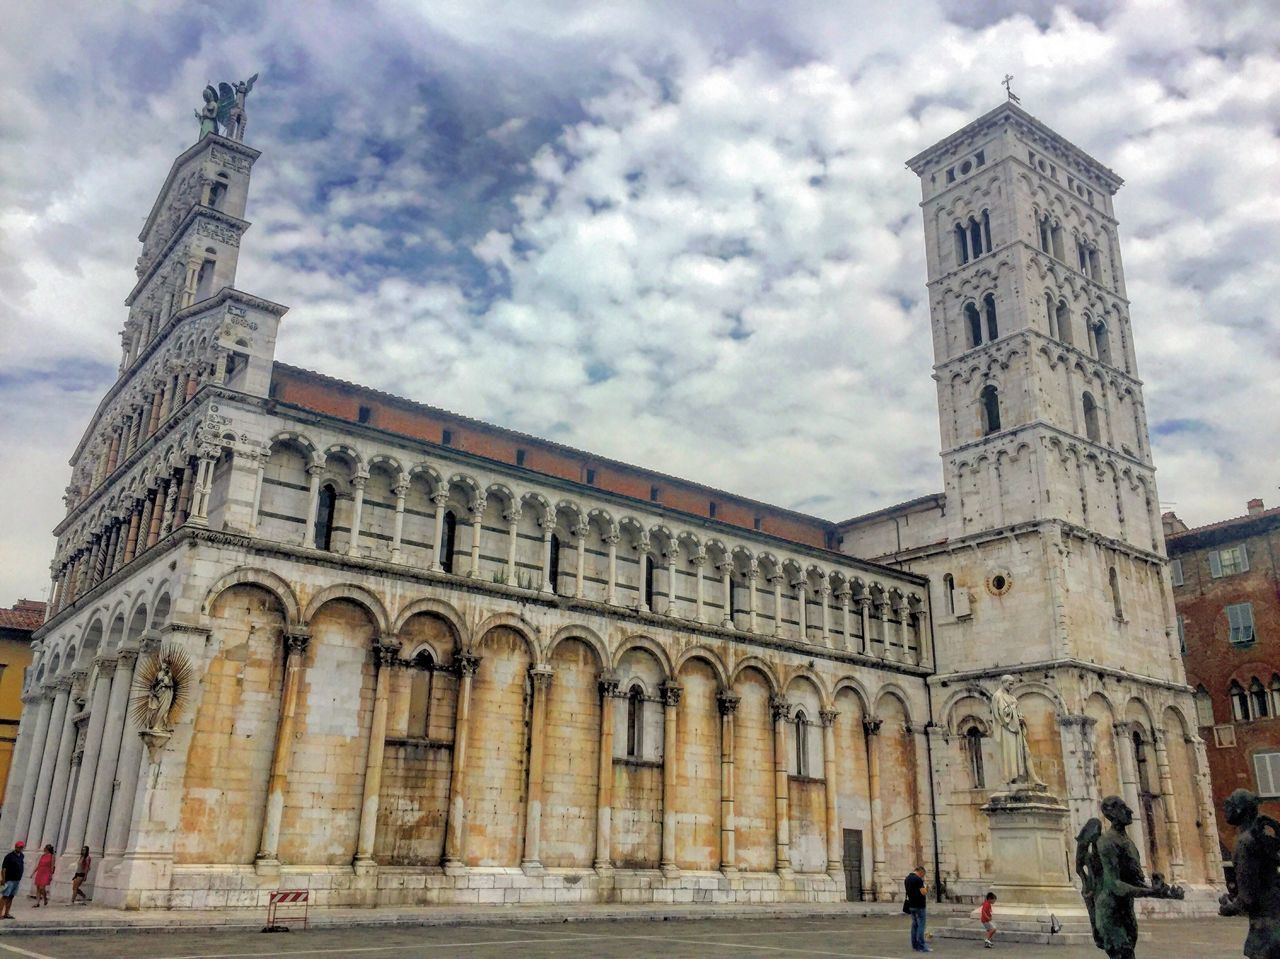 Lucca e il suo Duomo Architecture Travel Destinations Tourism History City Cloud - Sky EyeEm The Great Outdoors - 2017 EyeEm Awards Taking Photos EyeEm Selects Eye4photography  EyeEm Best Shots - Landscape EyeEm Best Shots EyeEmNewHere EyeEmBestPics EyeEm Gallery Religion Building Exterior Photography Place Of Worship Lucca Italy❤️